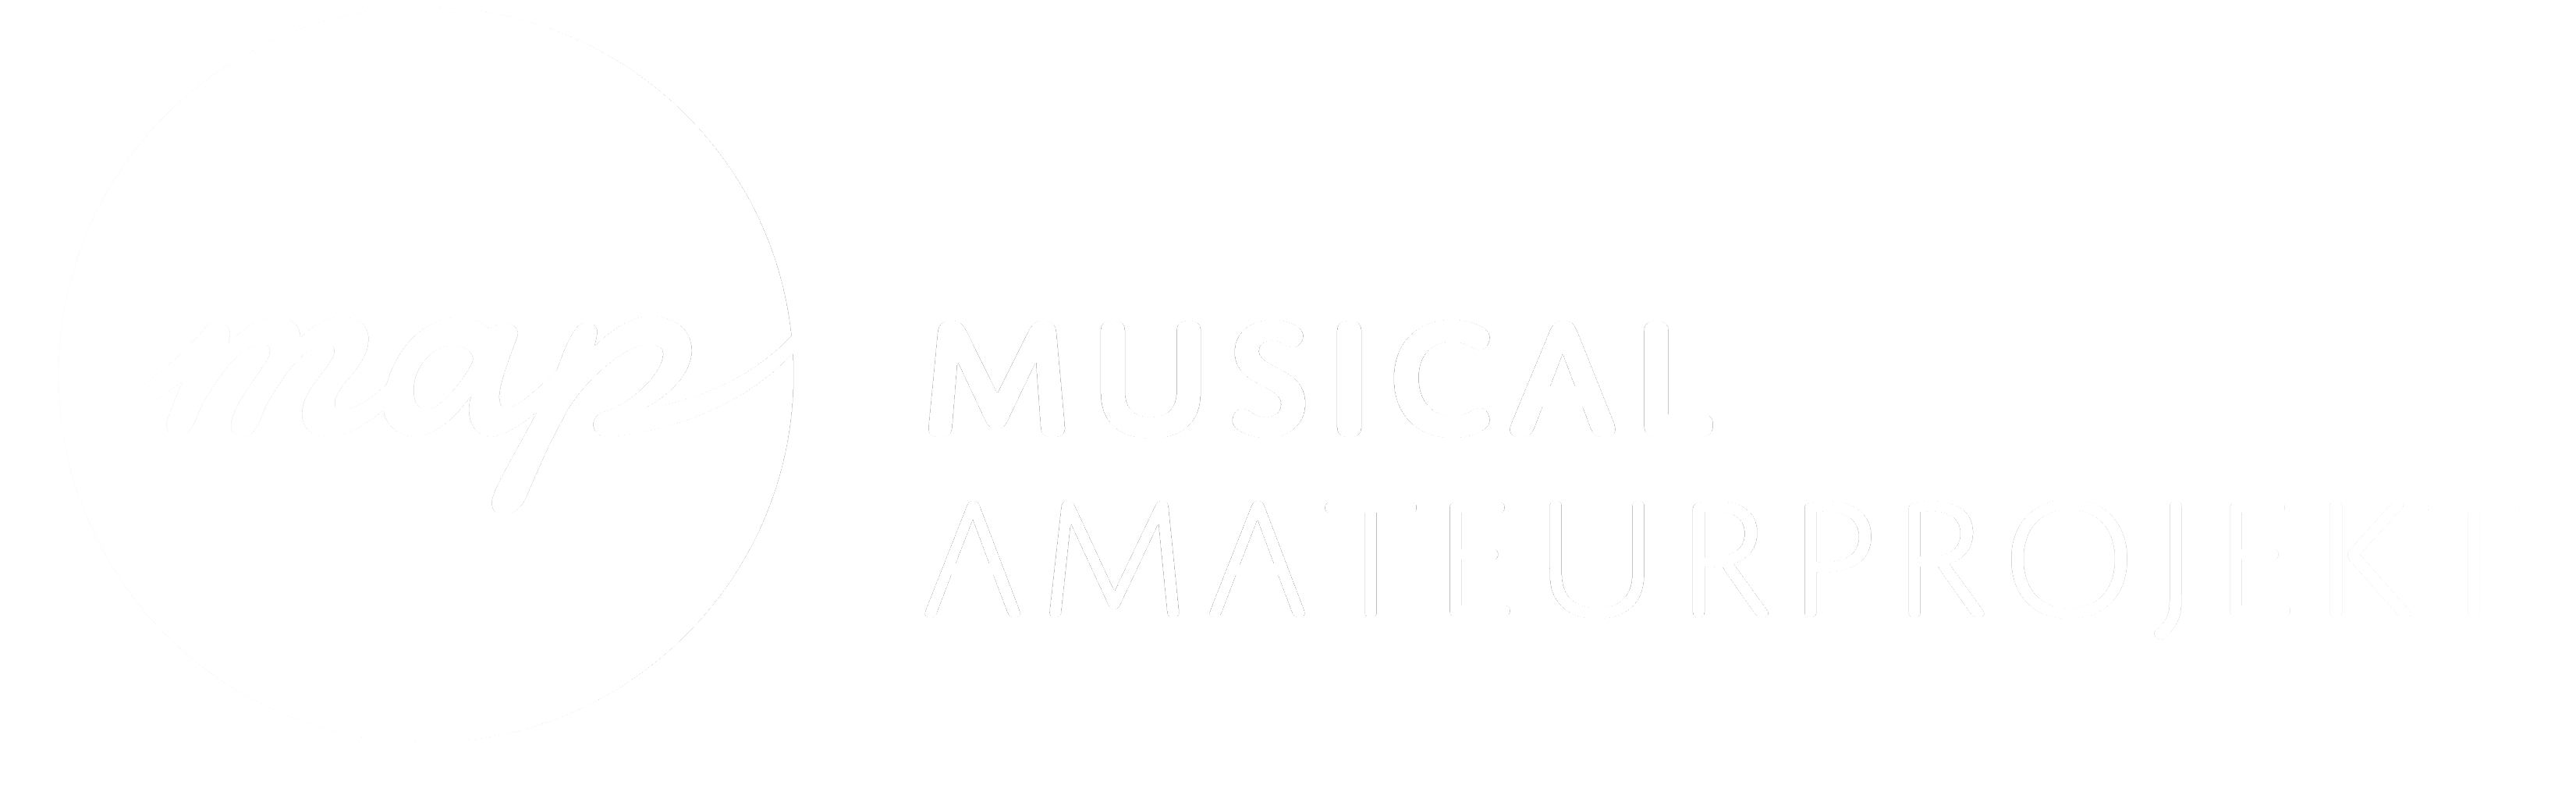 Musical Amateur Projekt